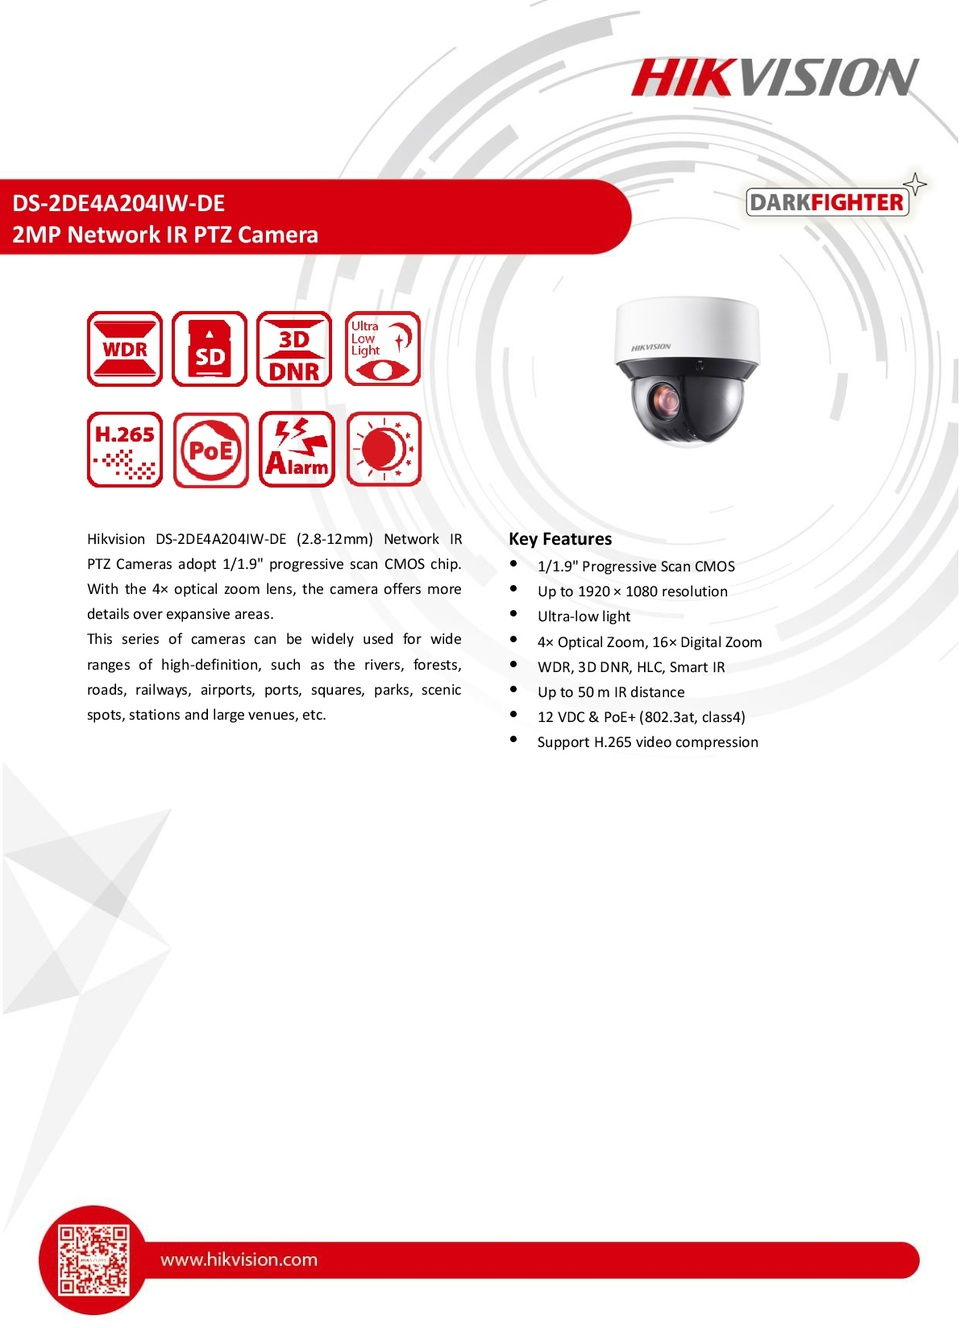 Hikvision DS-2DE4A204IW-DE 2MP IP PTZ Darkfighter Camera With 8-32mm Zoom Lens 0